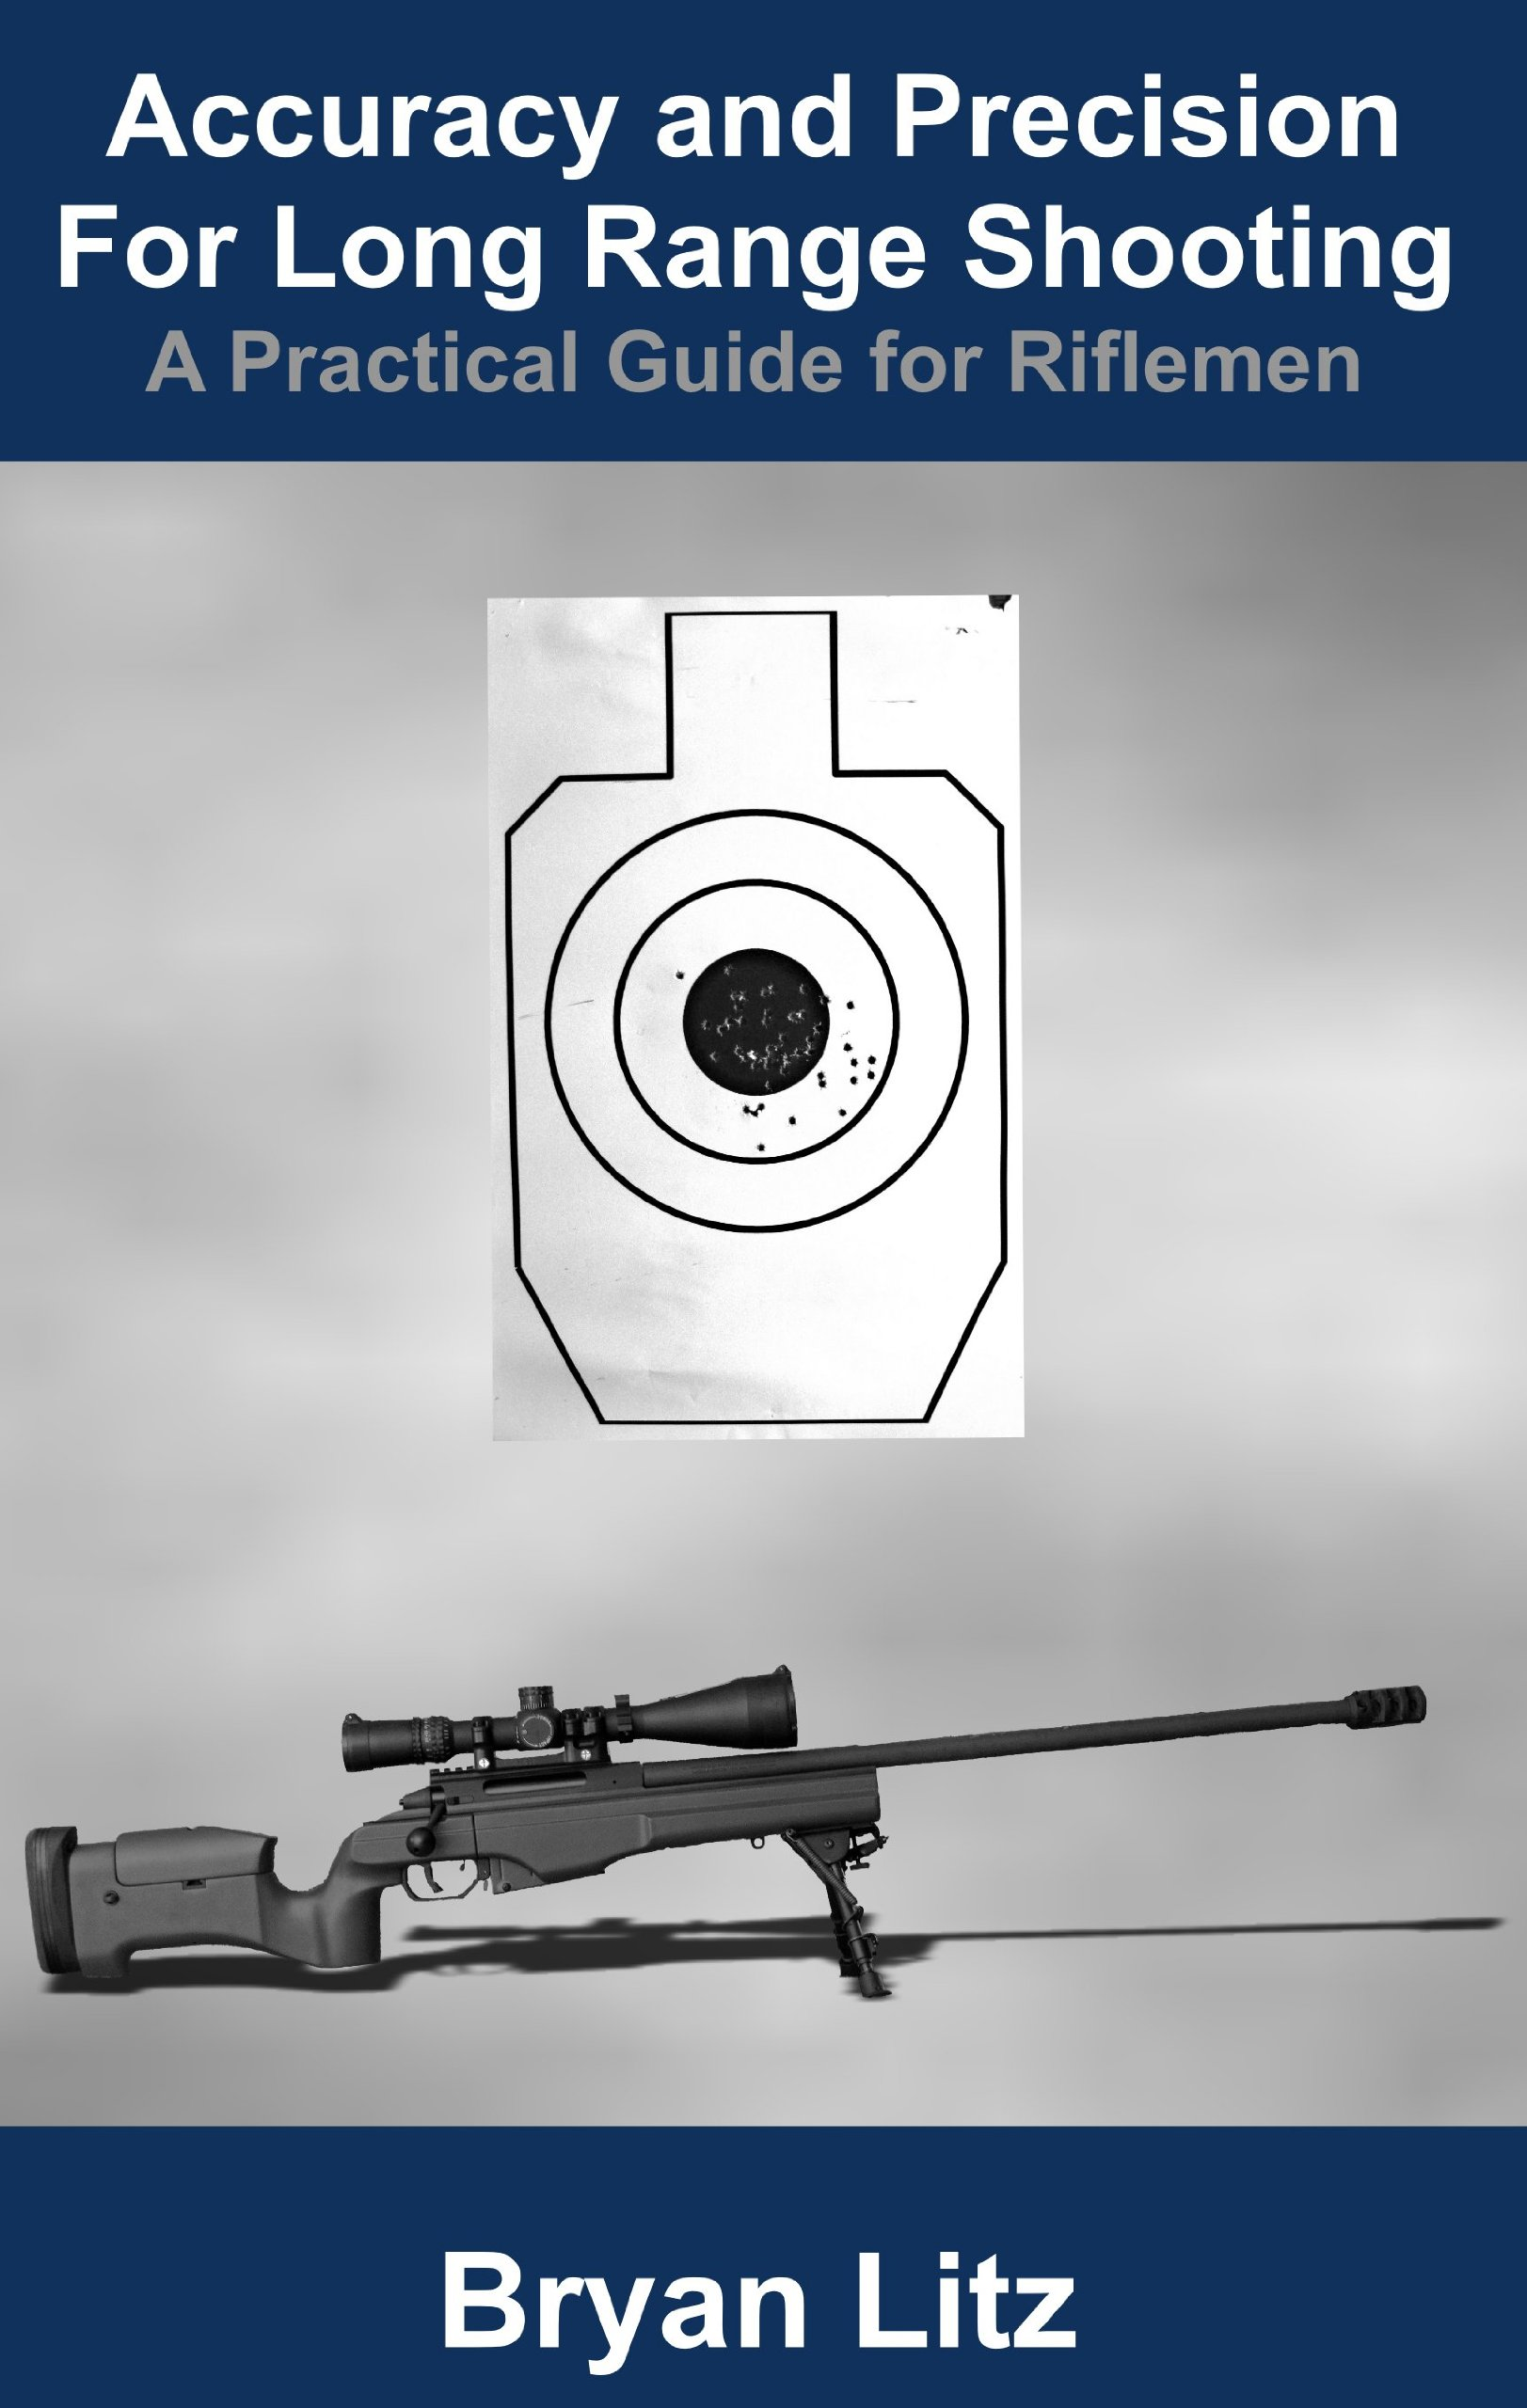 Accuracy and Precision for Long Range Shooting: A Practical